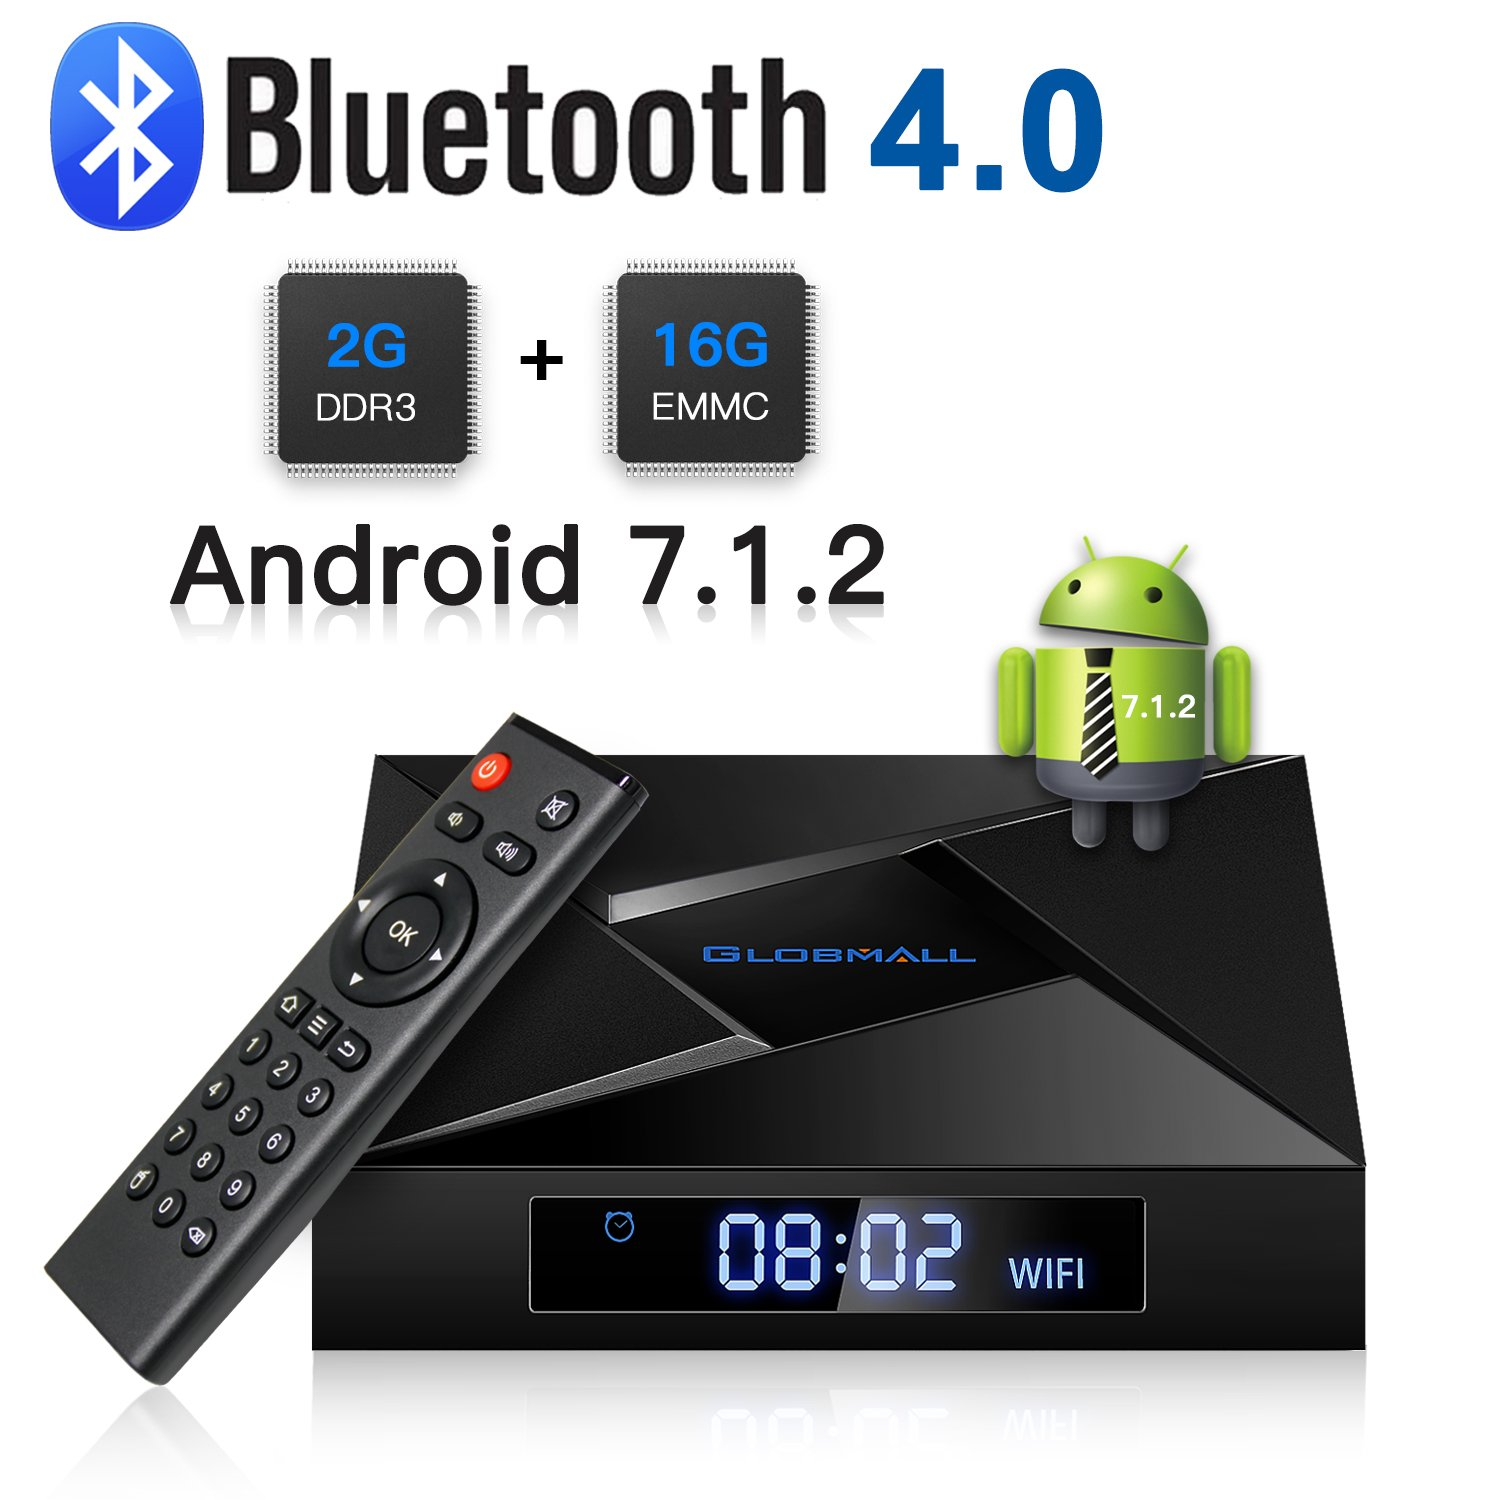 Android TV Box, ABOX 2018 Model X4 Android 7.1 TV Box 2GB RAM 16GB ROM Amlogic Quad Core A53 Processor 64 bits Real 4K Playing[ Bluetooth 4.0] Globmall GlobmallXX4